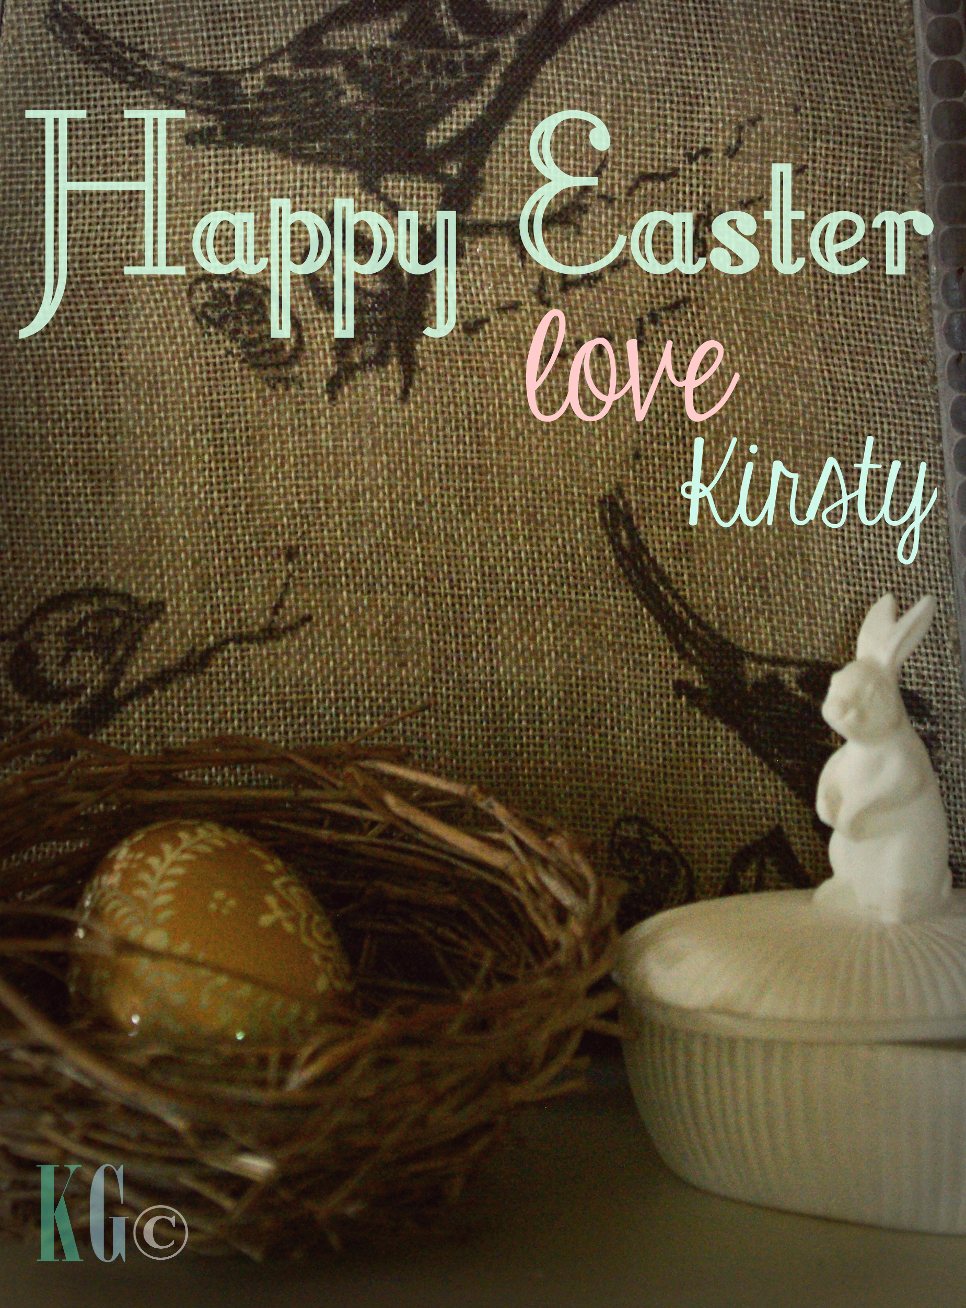 happy easter vignette photo rabbit golden egg nest